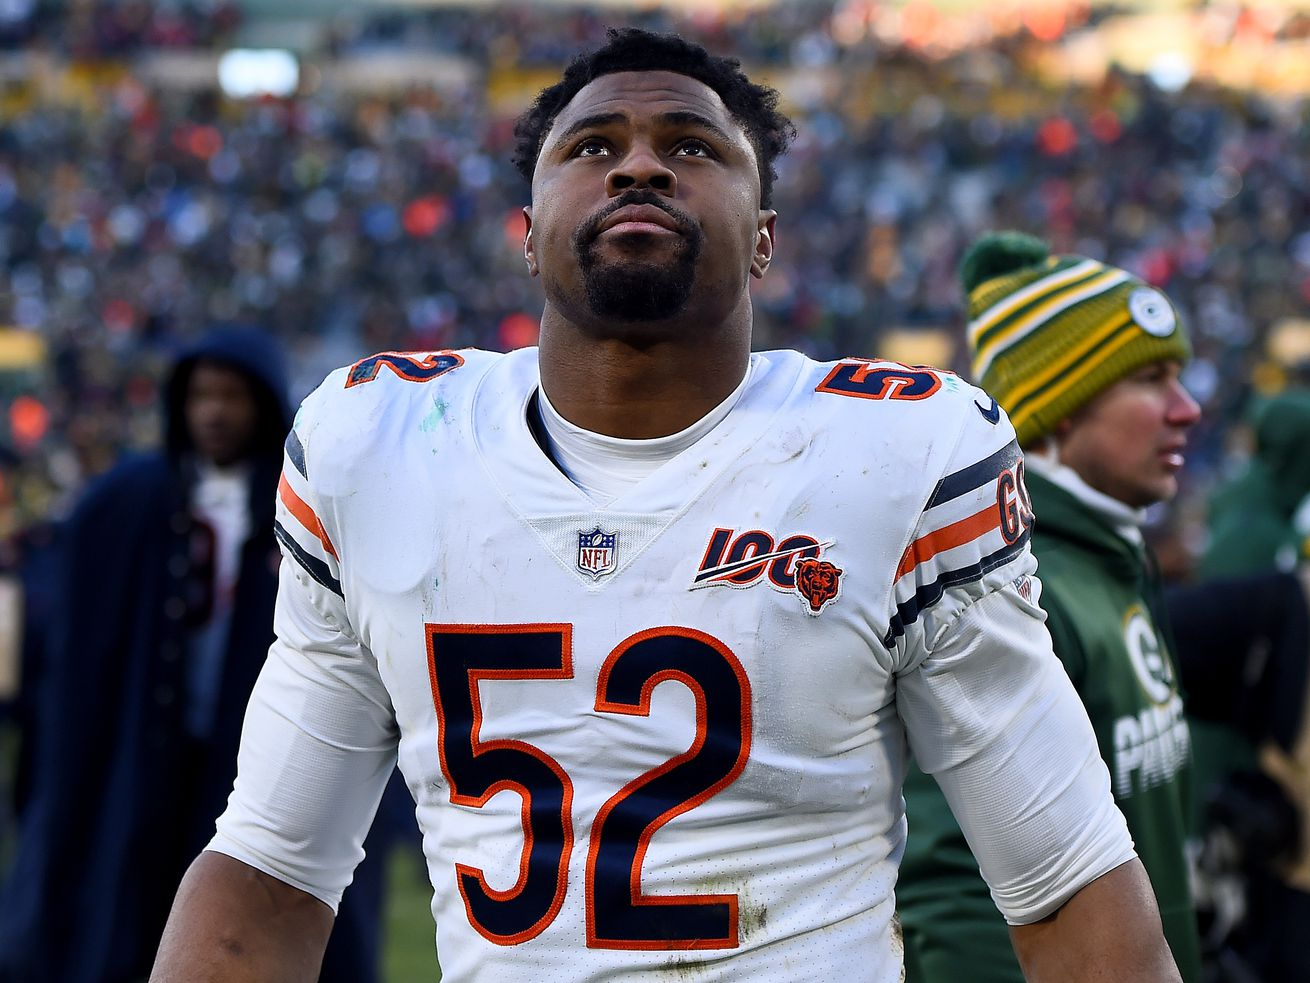 Bears' Khalil Mack: 'Everything has to be better'